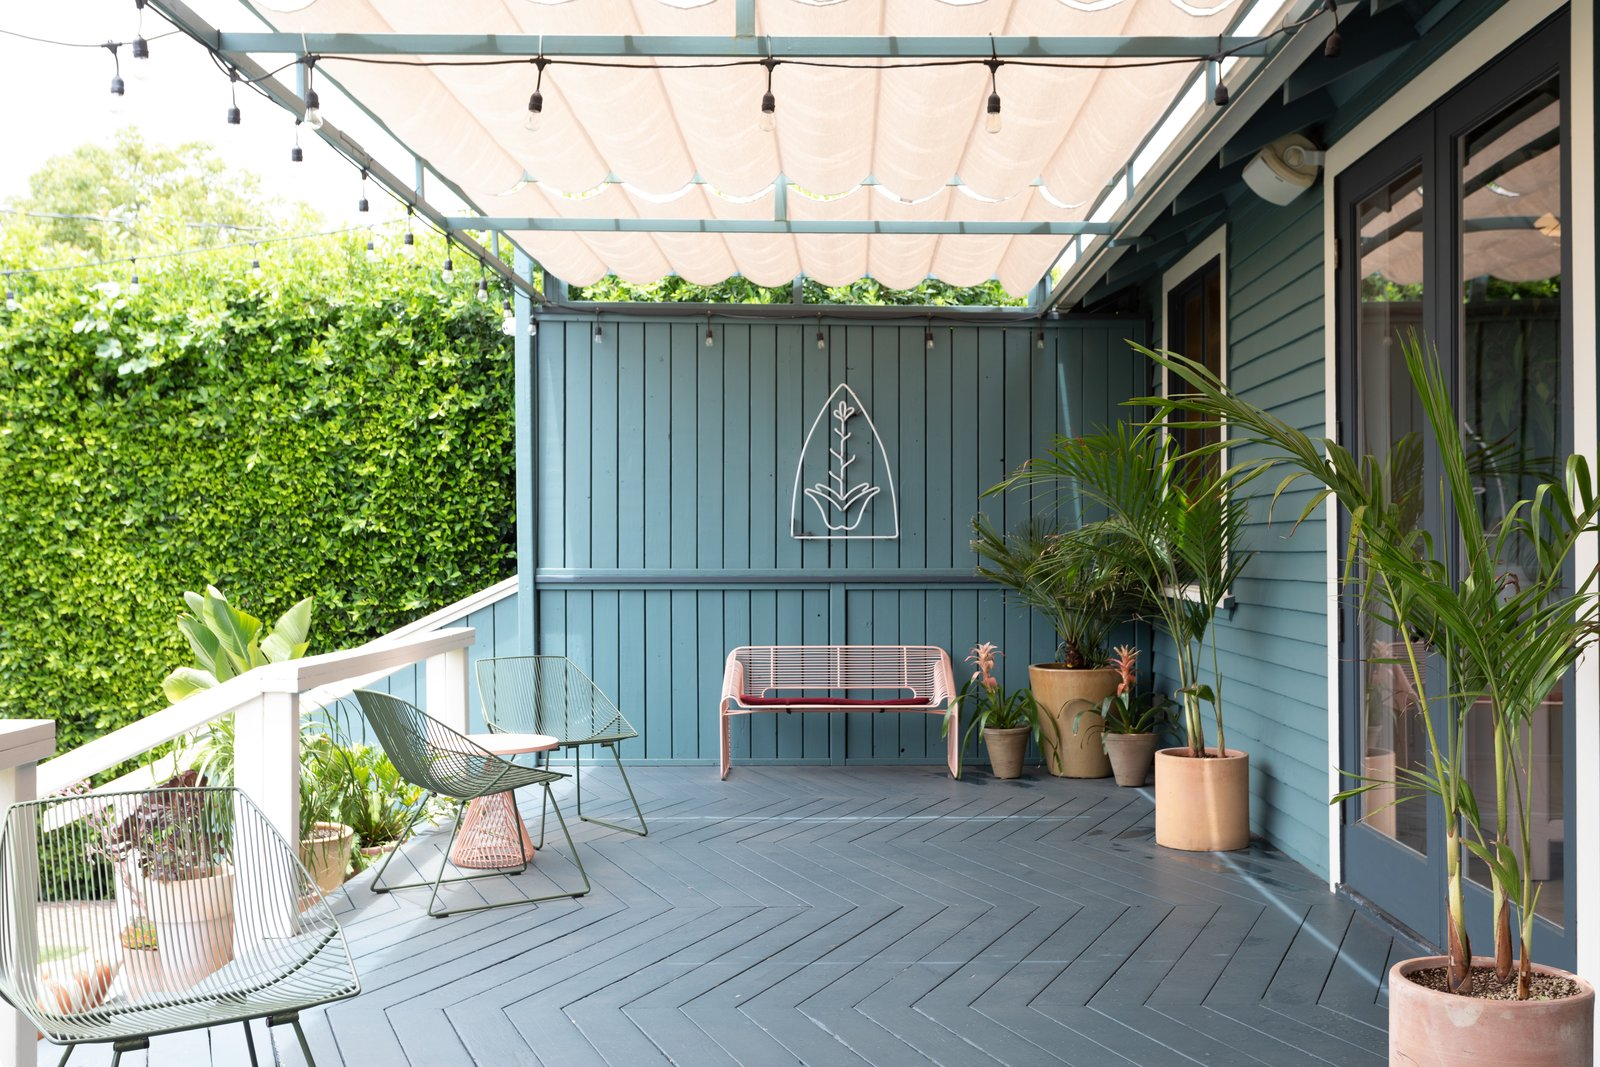 The Ruby Street patio